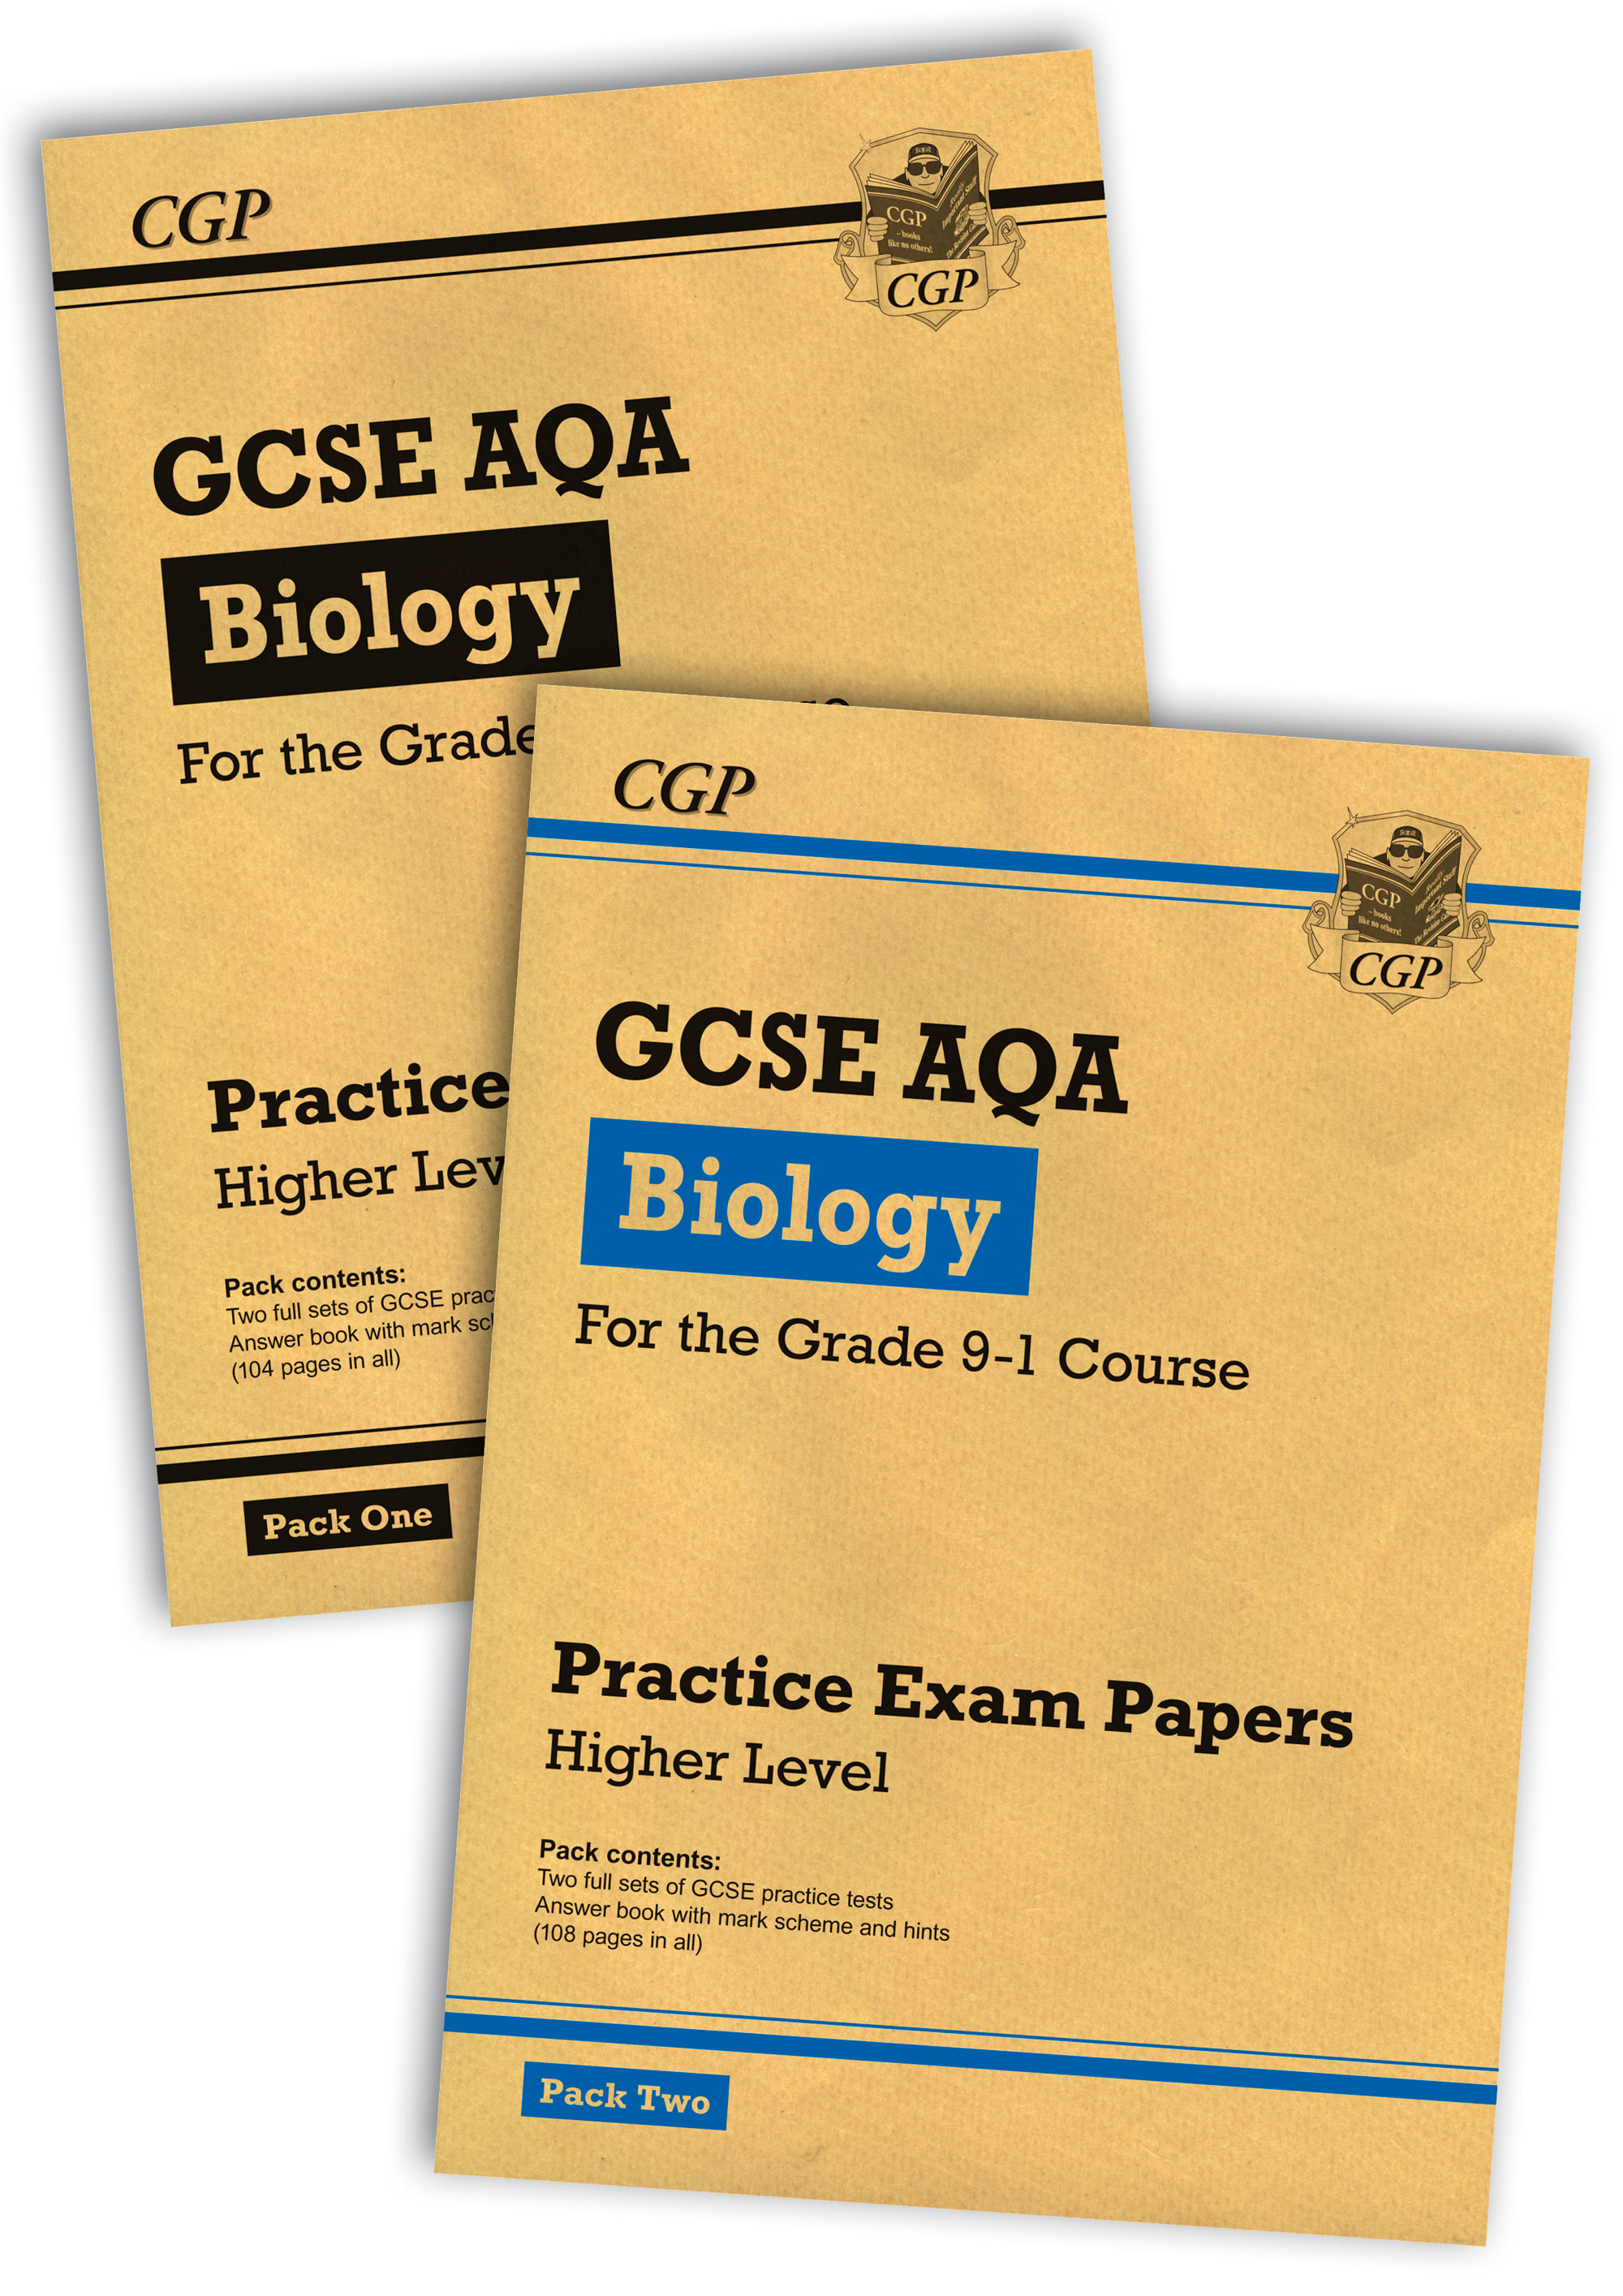 BAHBP41 - Grade 9-1 GCSE Biology AQA Practice Papers: Higher Pack 1 & 2 Bundle